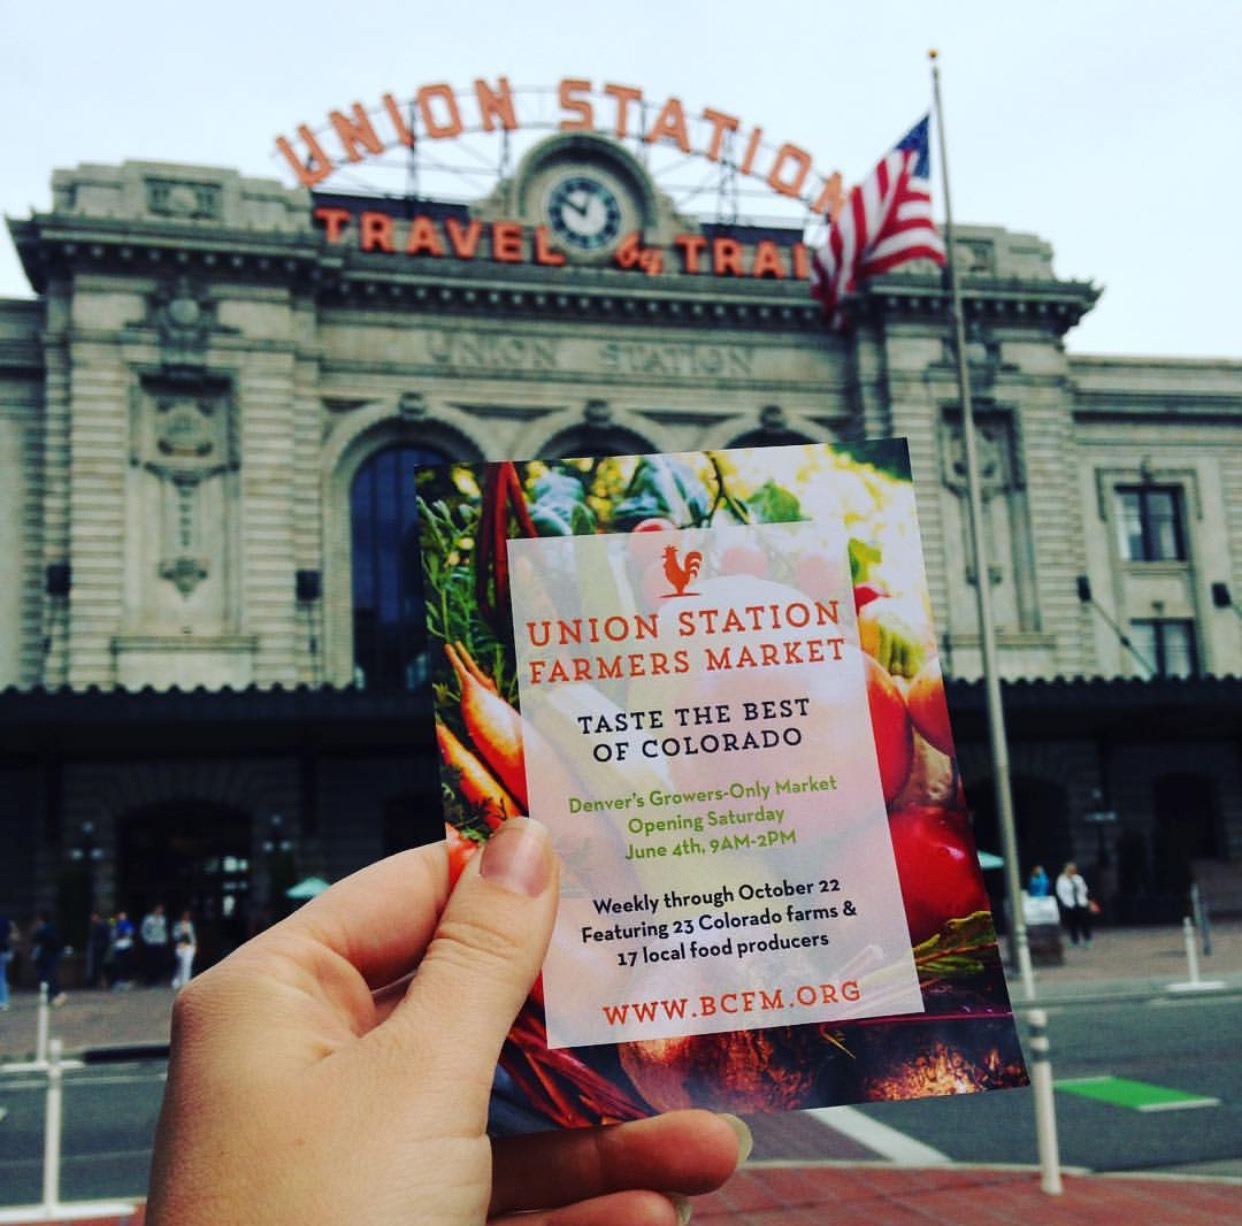 Denver Farmers Markets: Union Station Market- Downtown Denver's Saturday Gem